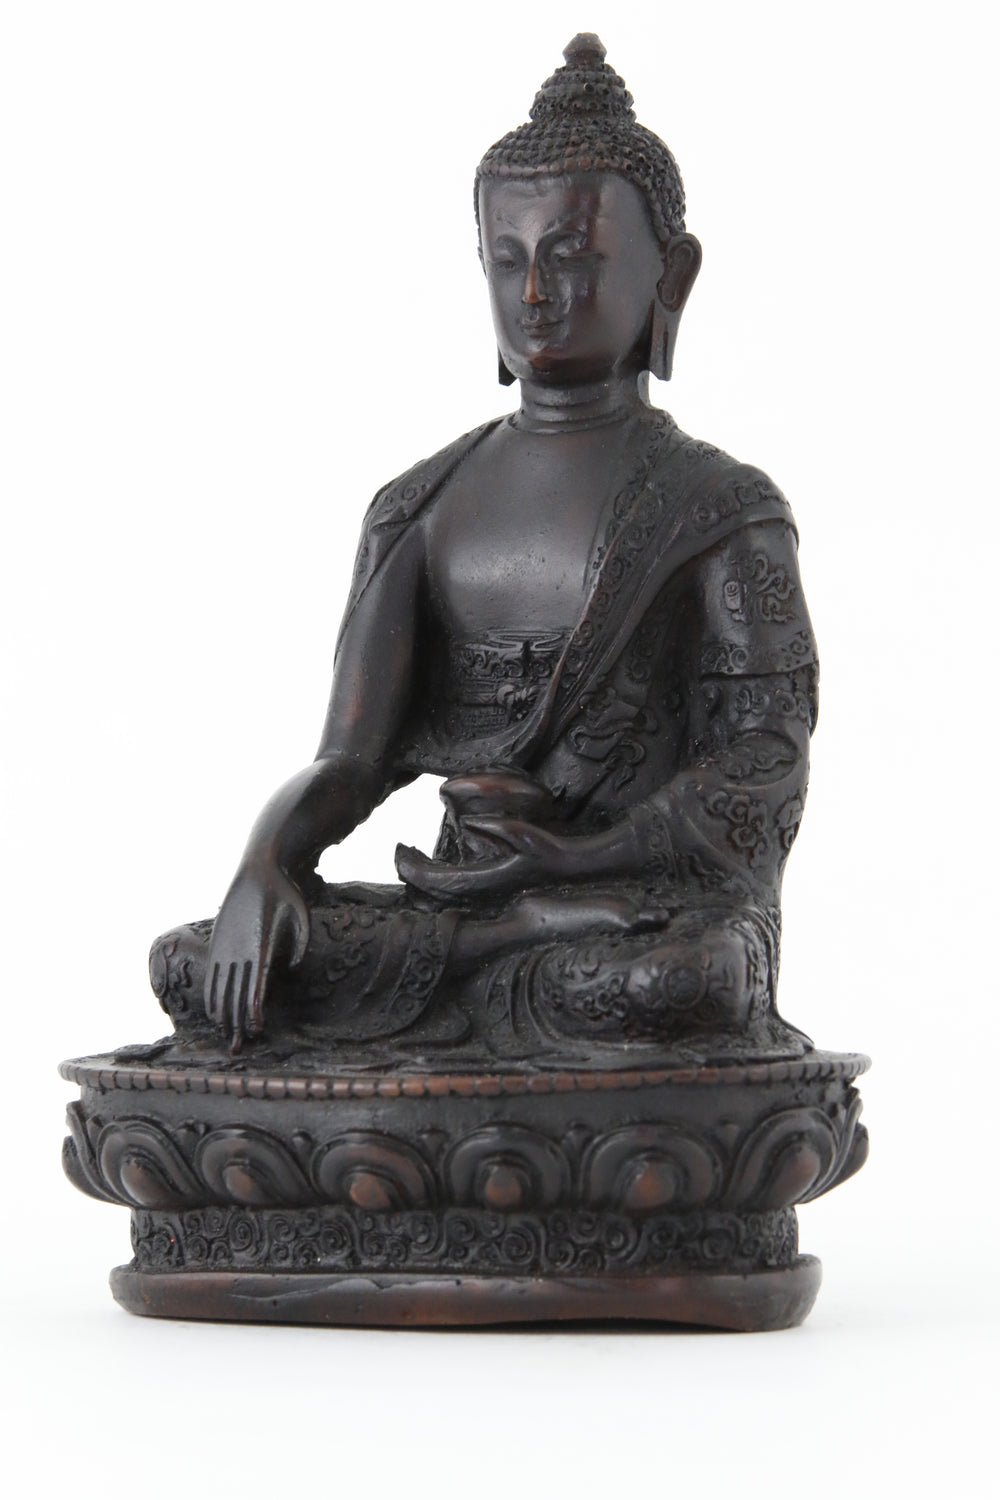 EARTH TOUCHING BUDDHA STATUE DARK LARGE SIDE VIEW